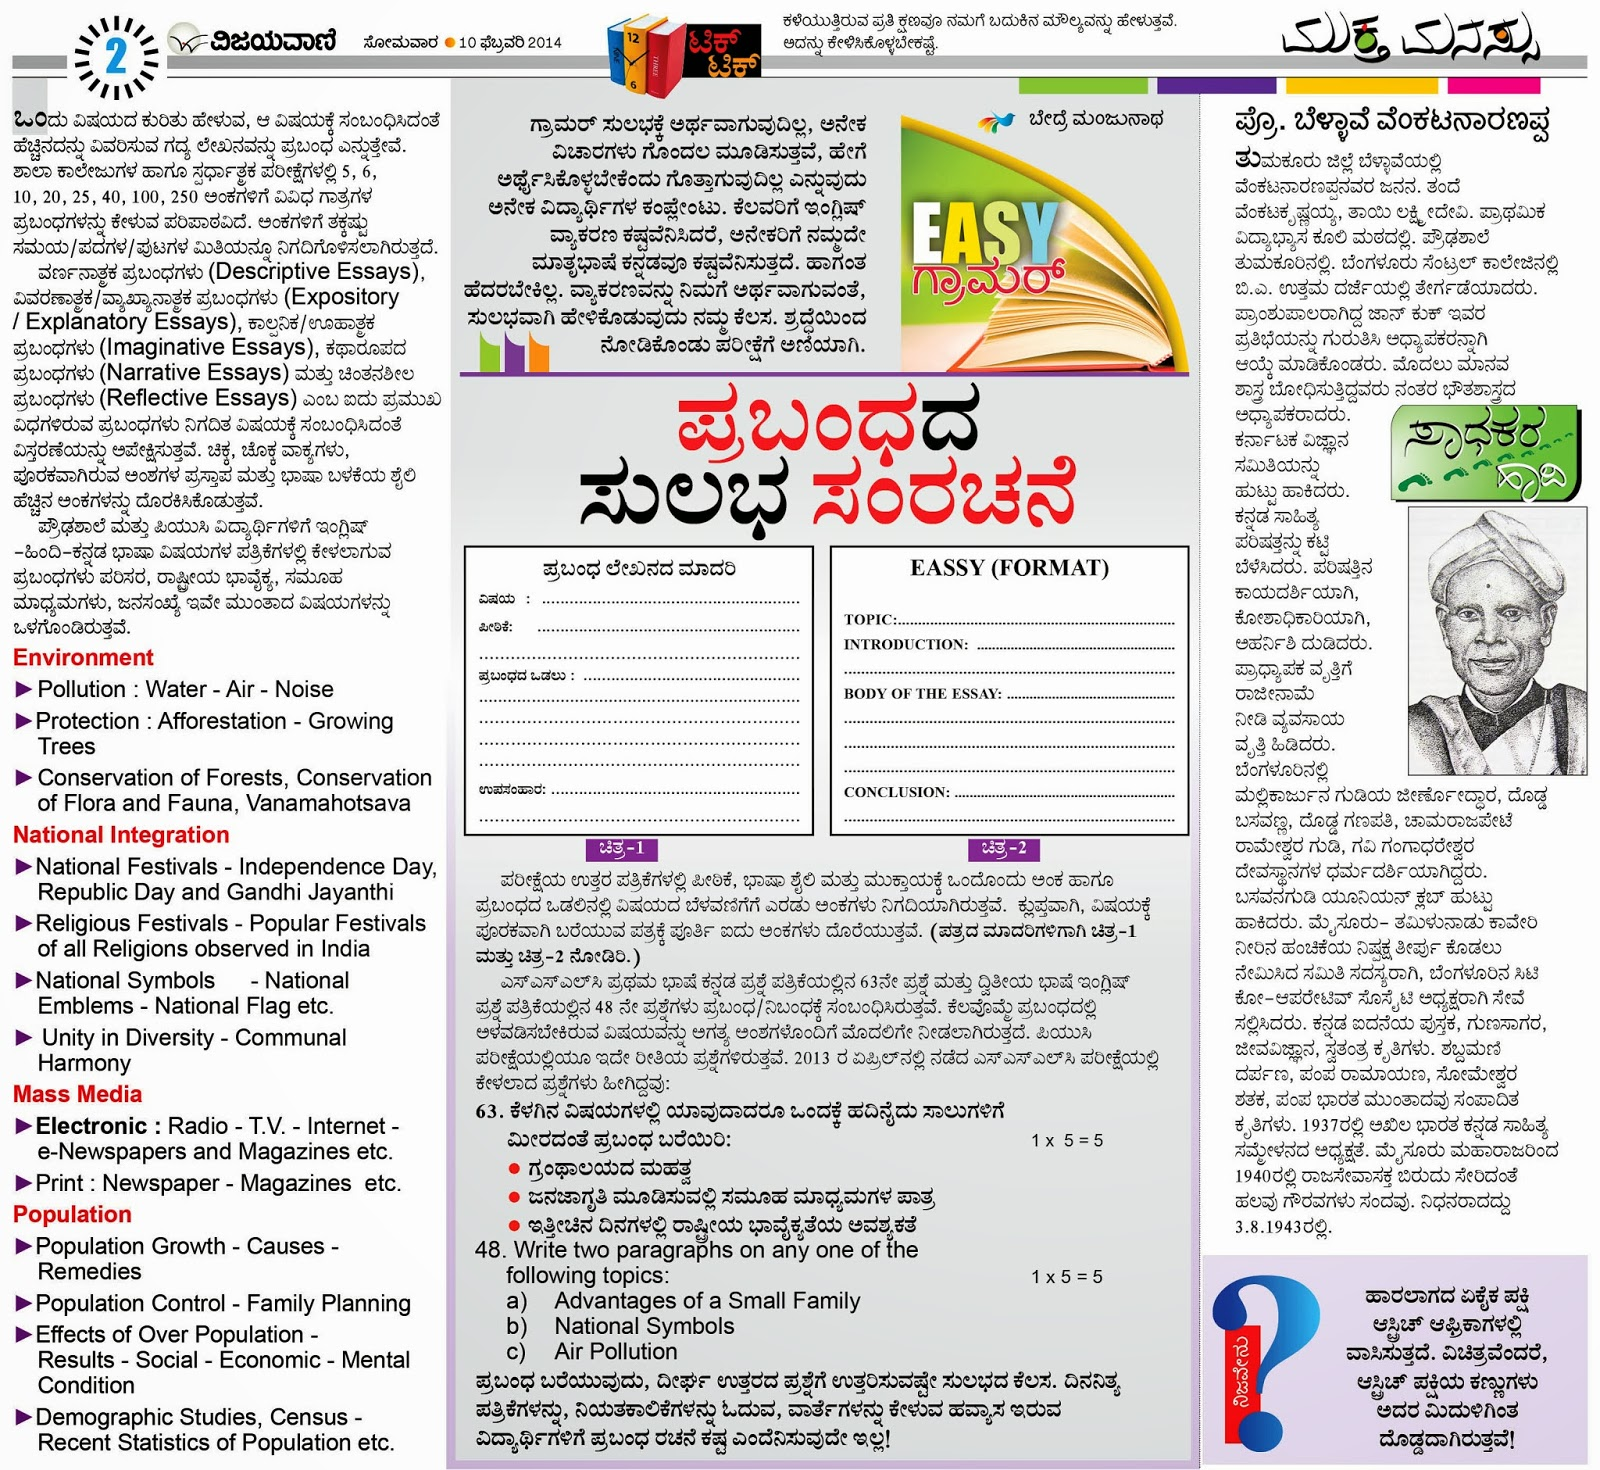 Short Essays For High School Students  Teachers Day Essay Hindi Language  Alkaline Puressentials  Essay For High School Students also Help With Essay Papers Essay On Teachers Day In Kannada Teachers Day  Wikipedia The Free  How To Write A Thesis Paragraph For An Essay